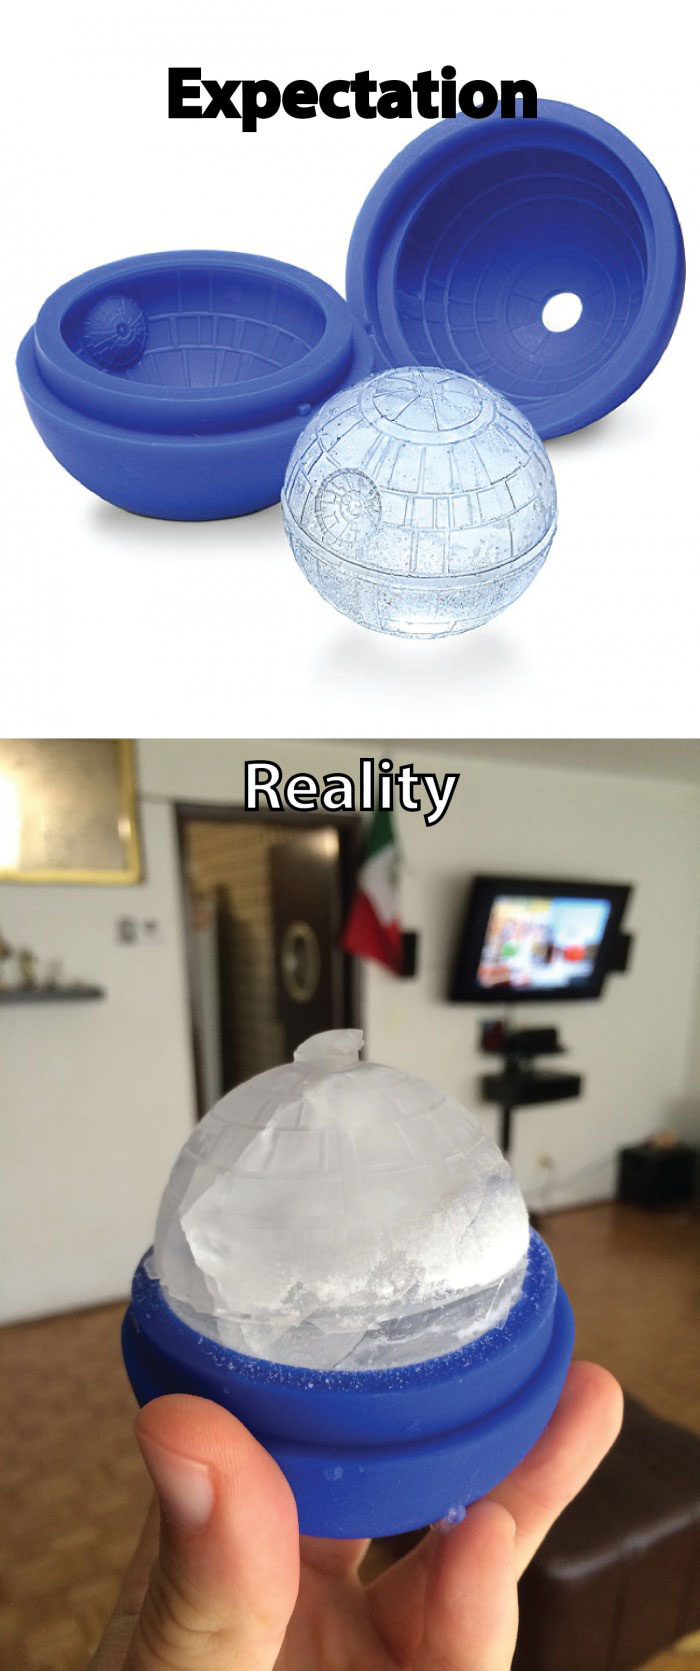 expectation, reality, death star ice cube tray, product